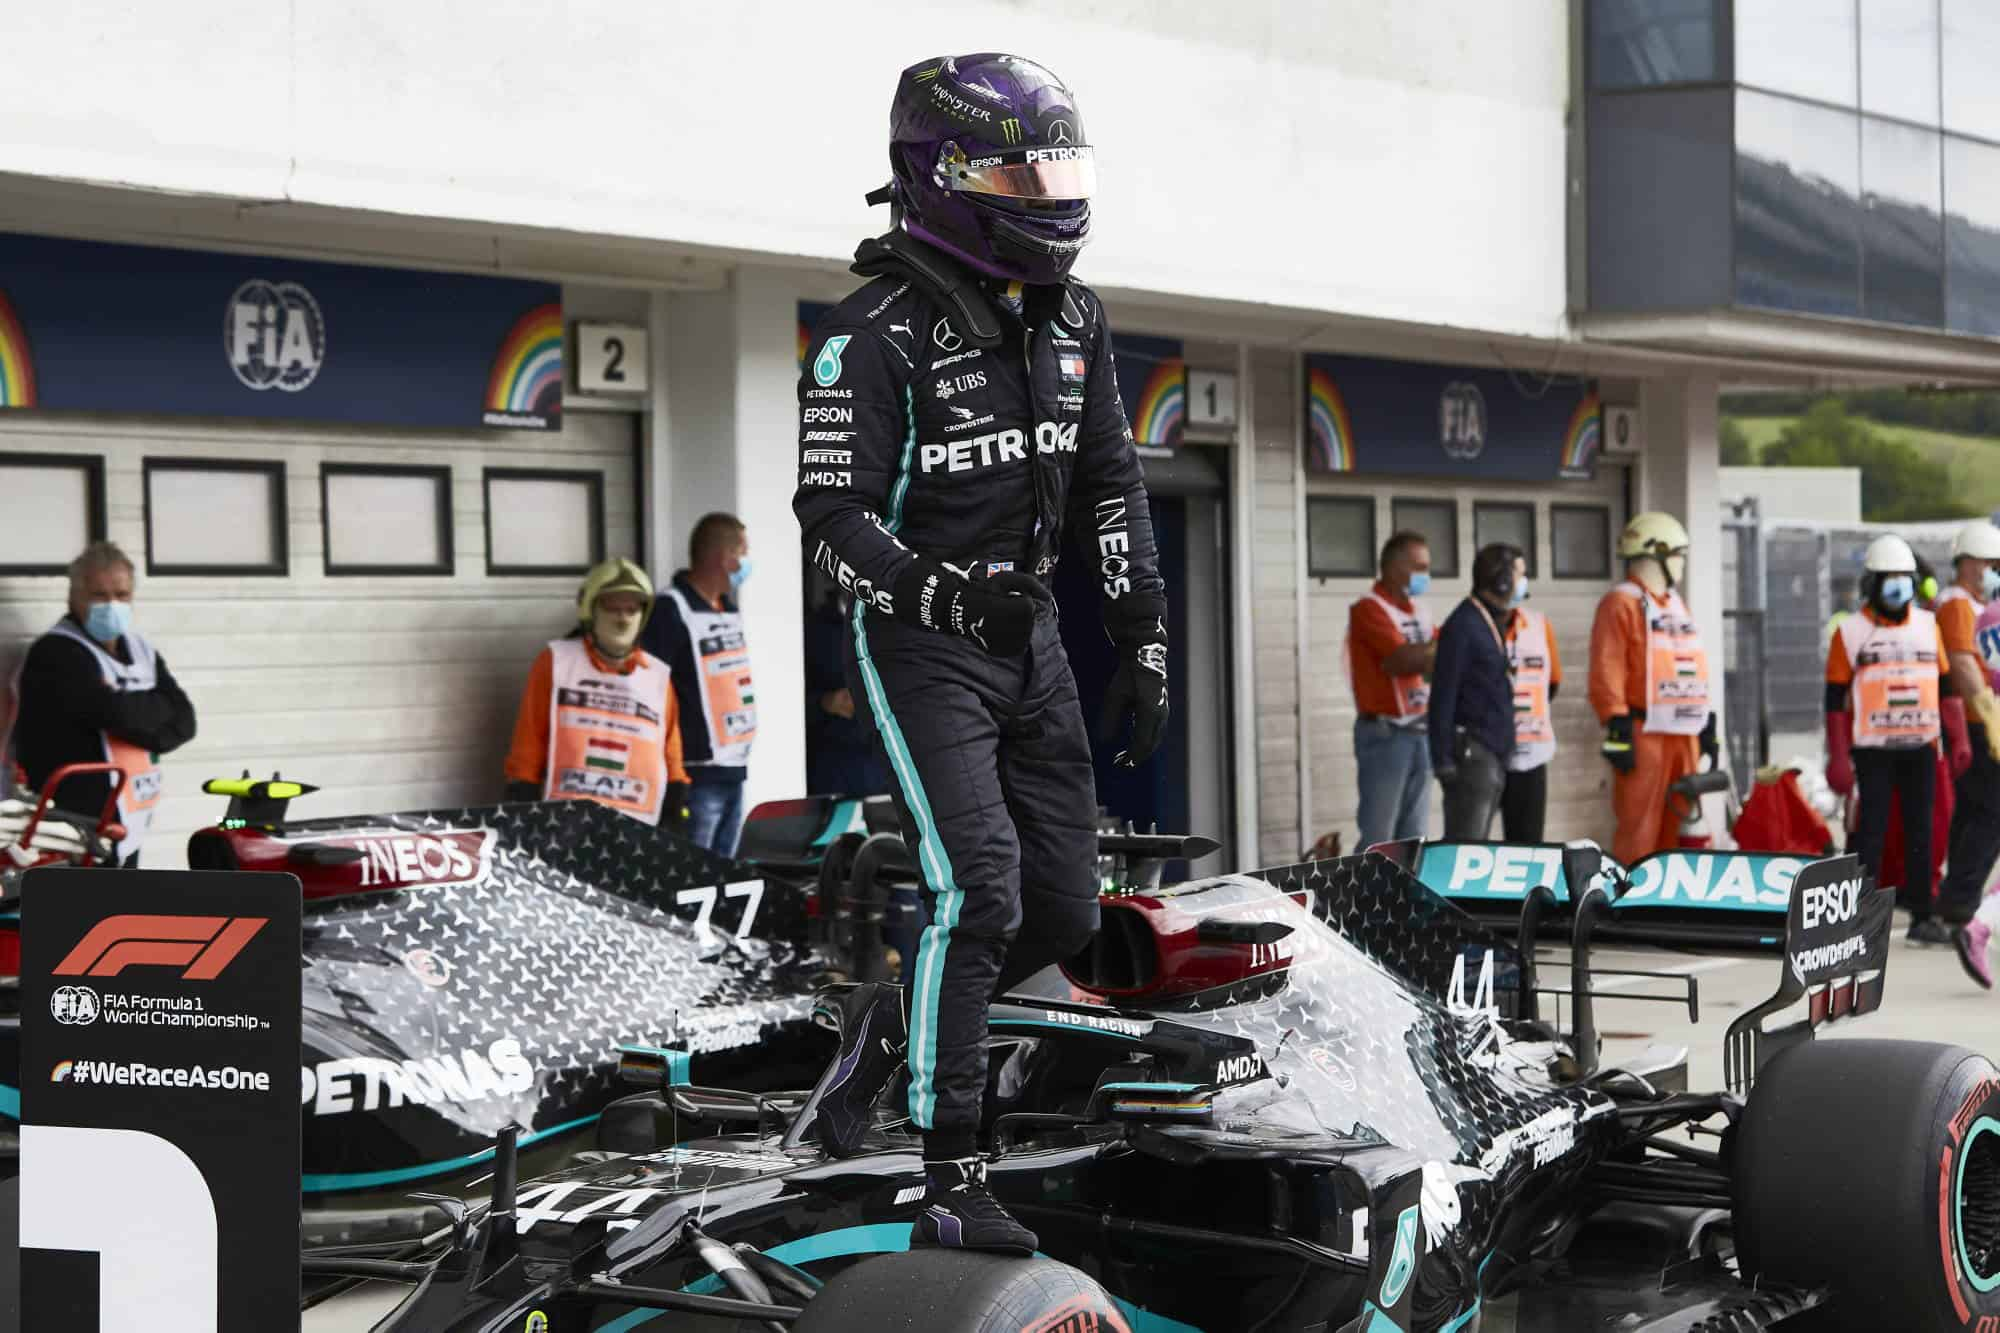 Hamilton Mercedes 2020 Hungarian GP after qualifying Soft Pirelli on the car parc ferme Photo Daimler